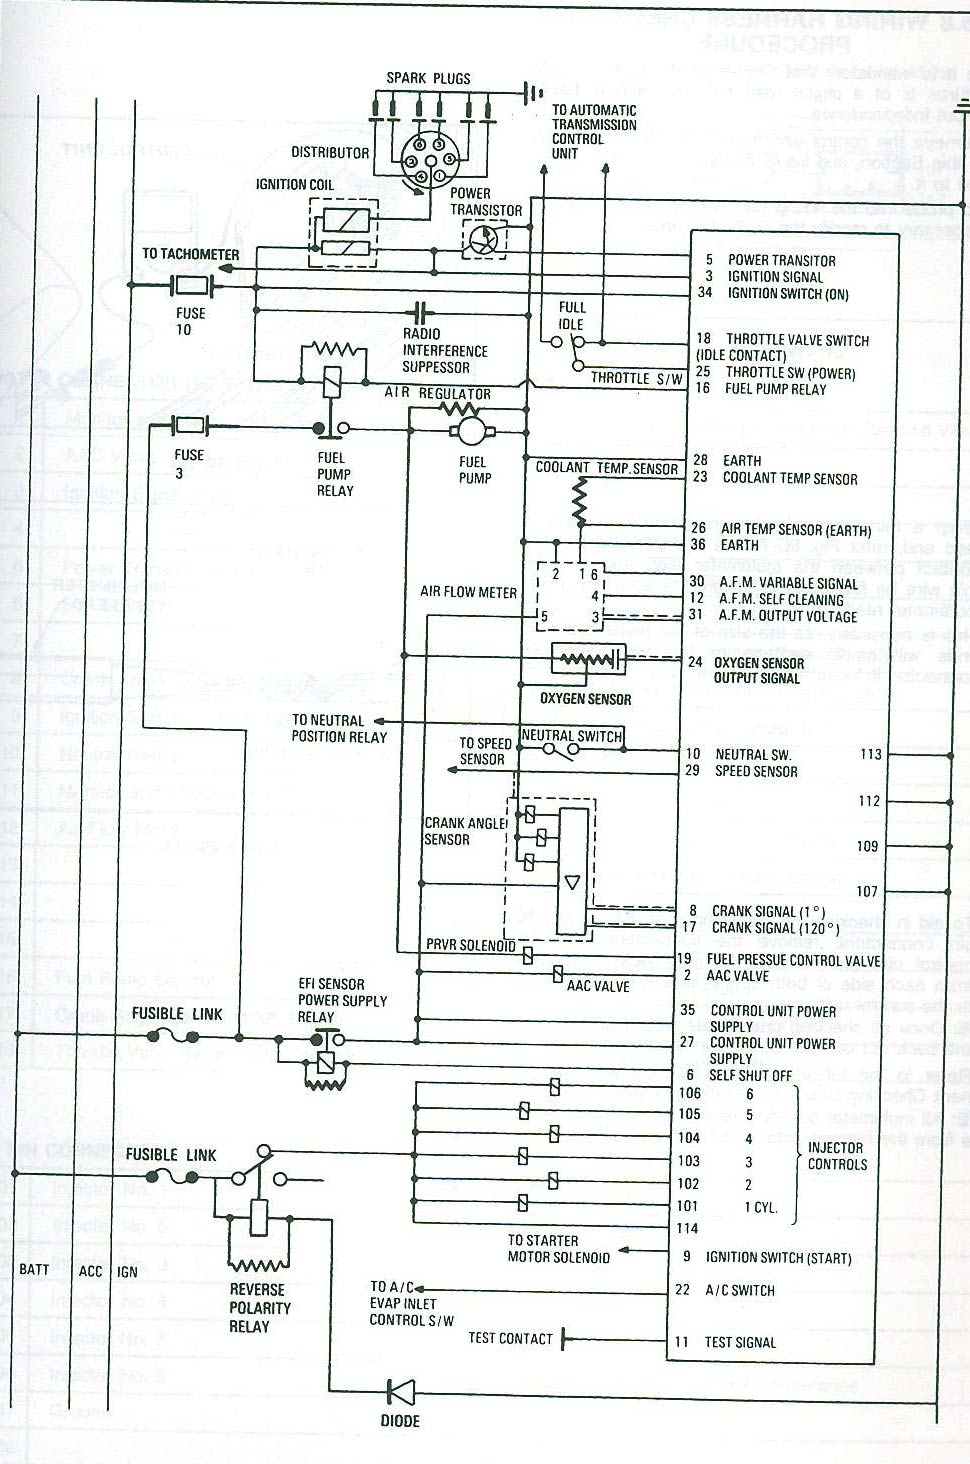 ecuwiring vl commodore wiring diagram vn commodore \u2022 wiring diagrams j vl commodore ecu wiring diagram at edmiracle.co